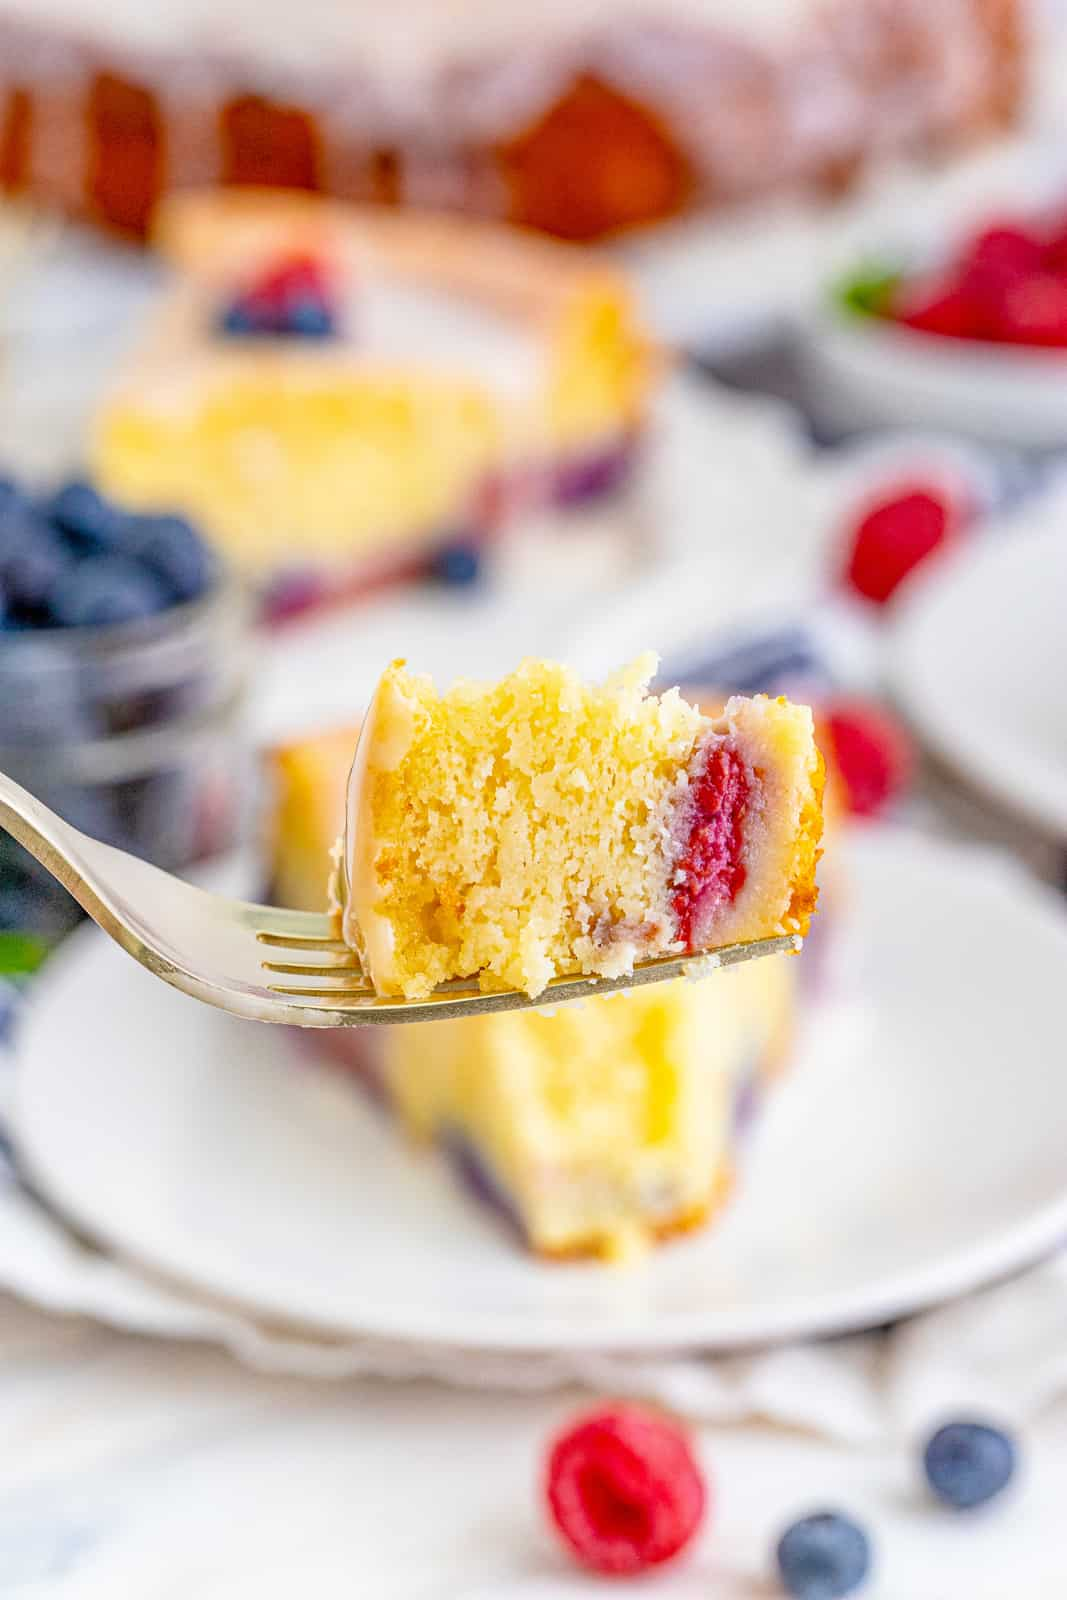 Fork holding up a piece bite of cake on fork